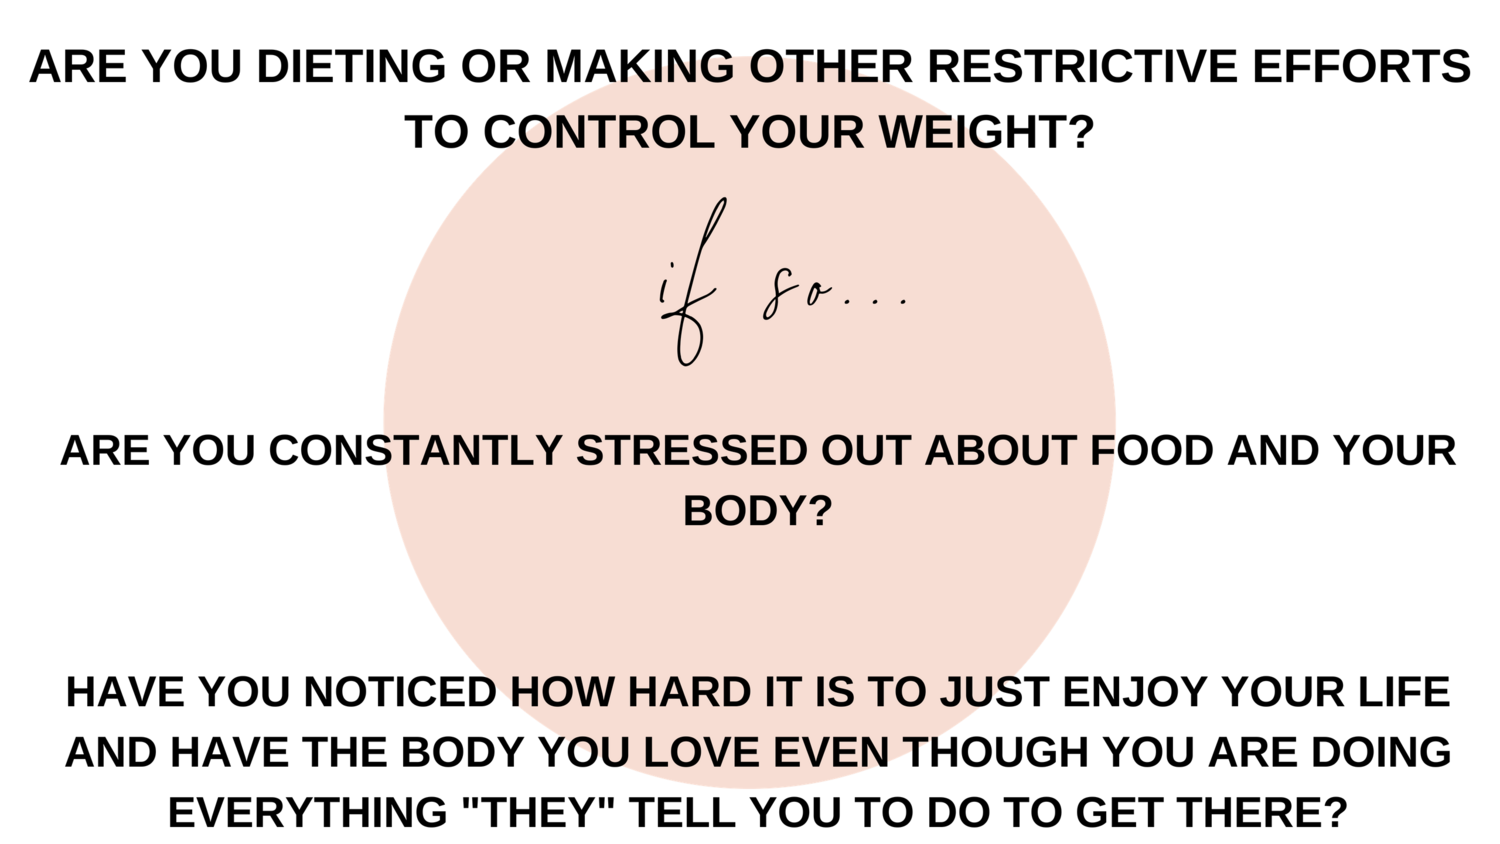 ARE+YOU+DIETING+OR+MAKING+OTHER+RESTRICTIVE+EFFORTS+TO+CONTROL+YOUR+WEIGHT_+IF+SO..+ARE+YOU+CONSTANTLY+STRESSED+OUT+ABOUT+FOOD+AND+YOUR+BODY_+HAVE+YOU+NOTICED+HOW+HARD+IT+I.png